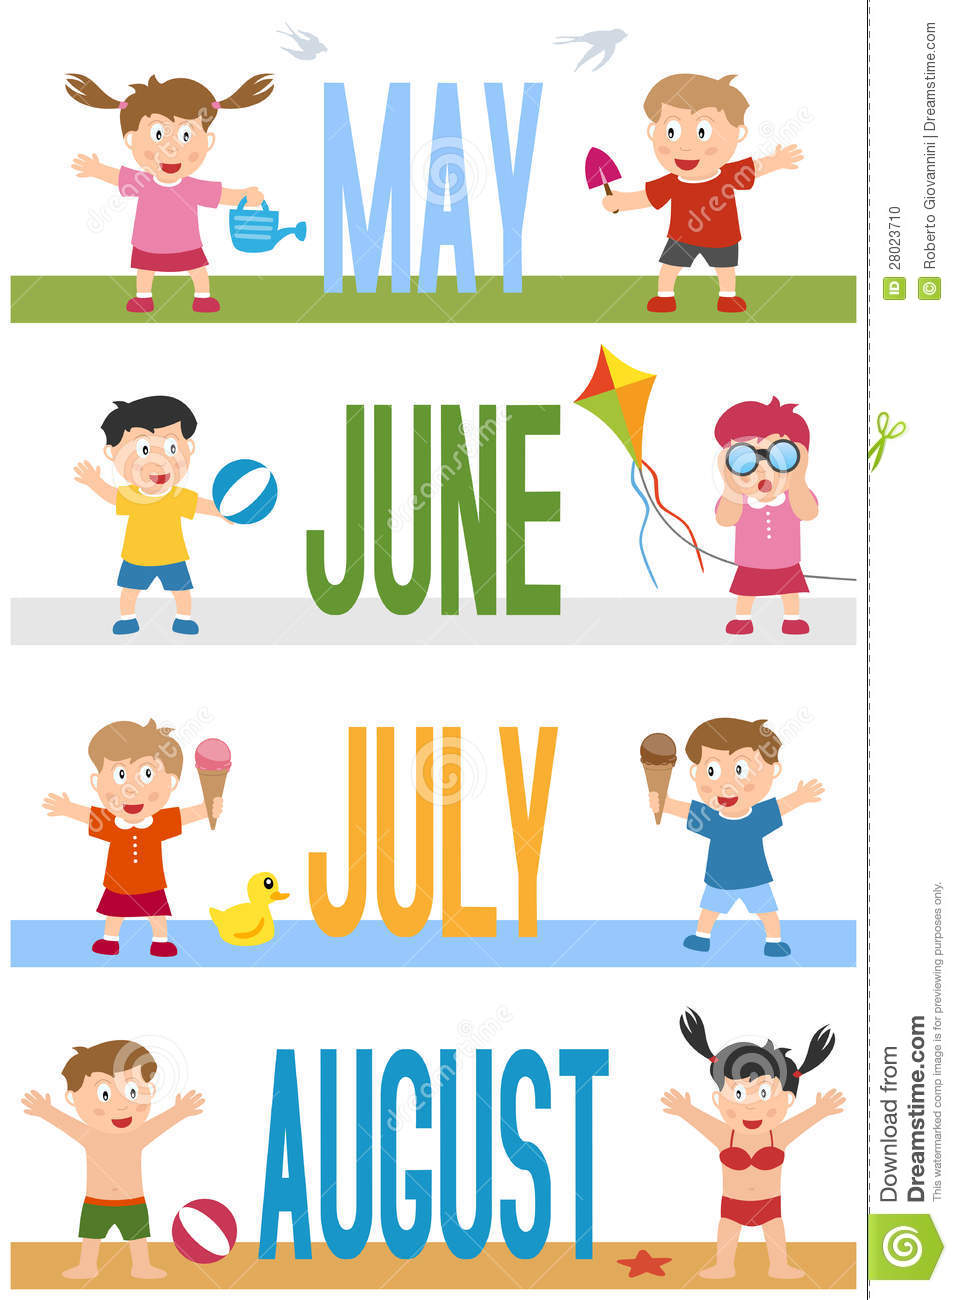 Month Of July Clipart Months Banners Wit-Month Of July Clipart Months Banners With Kids-18